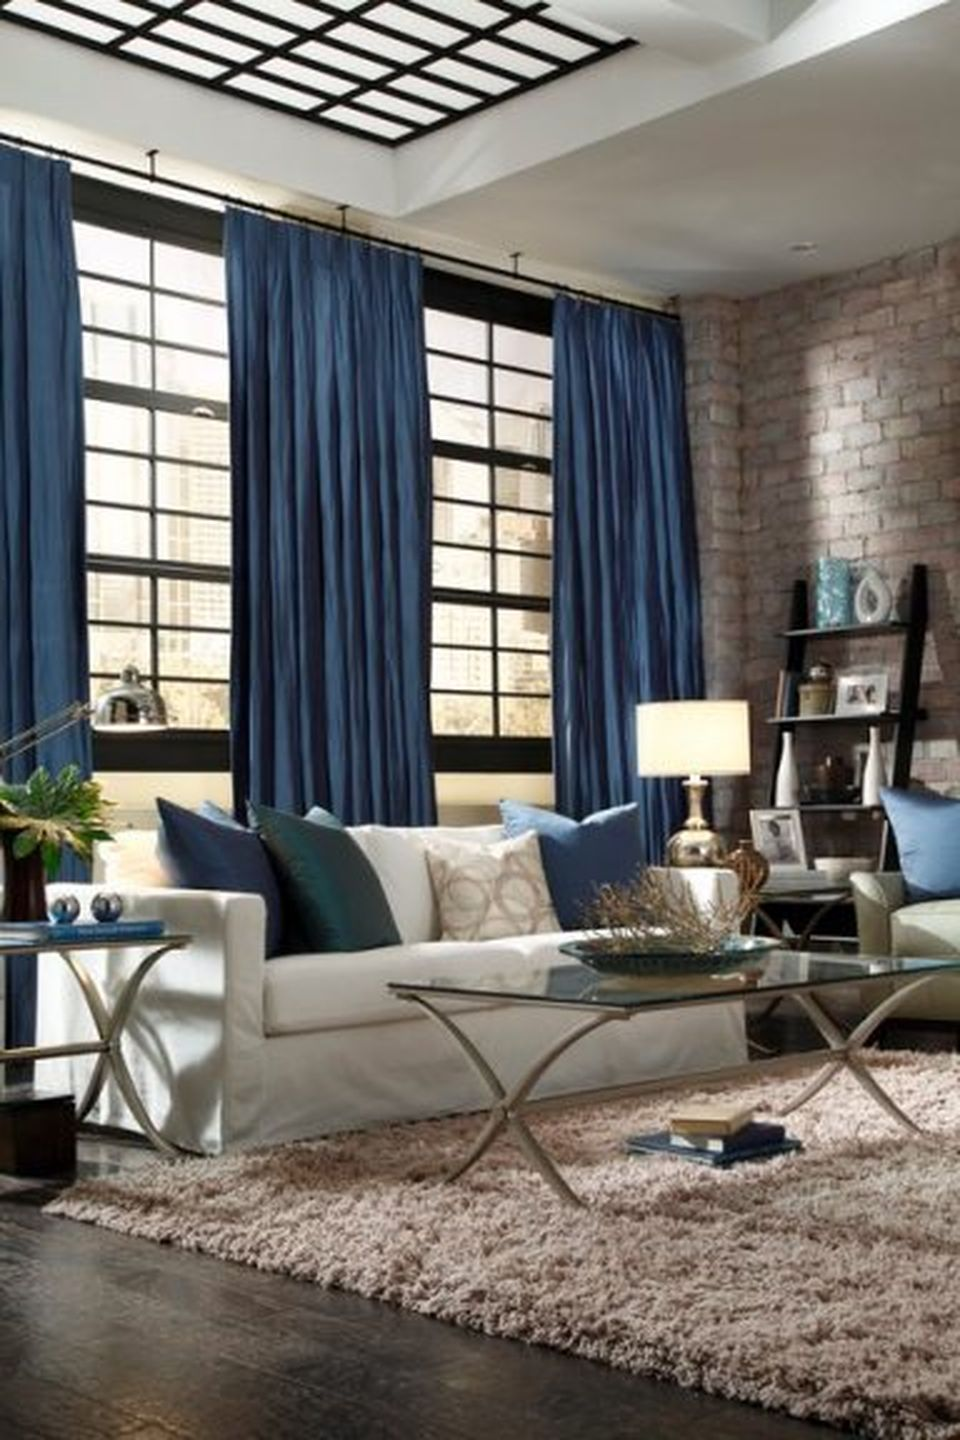 Awesome Tall Curtains Ideas for Living Room 59